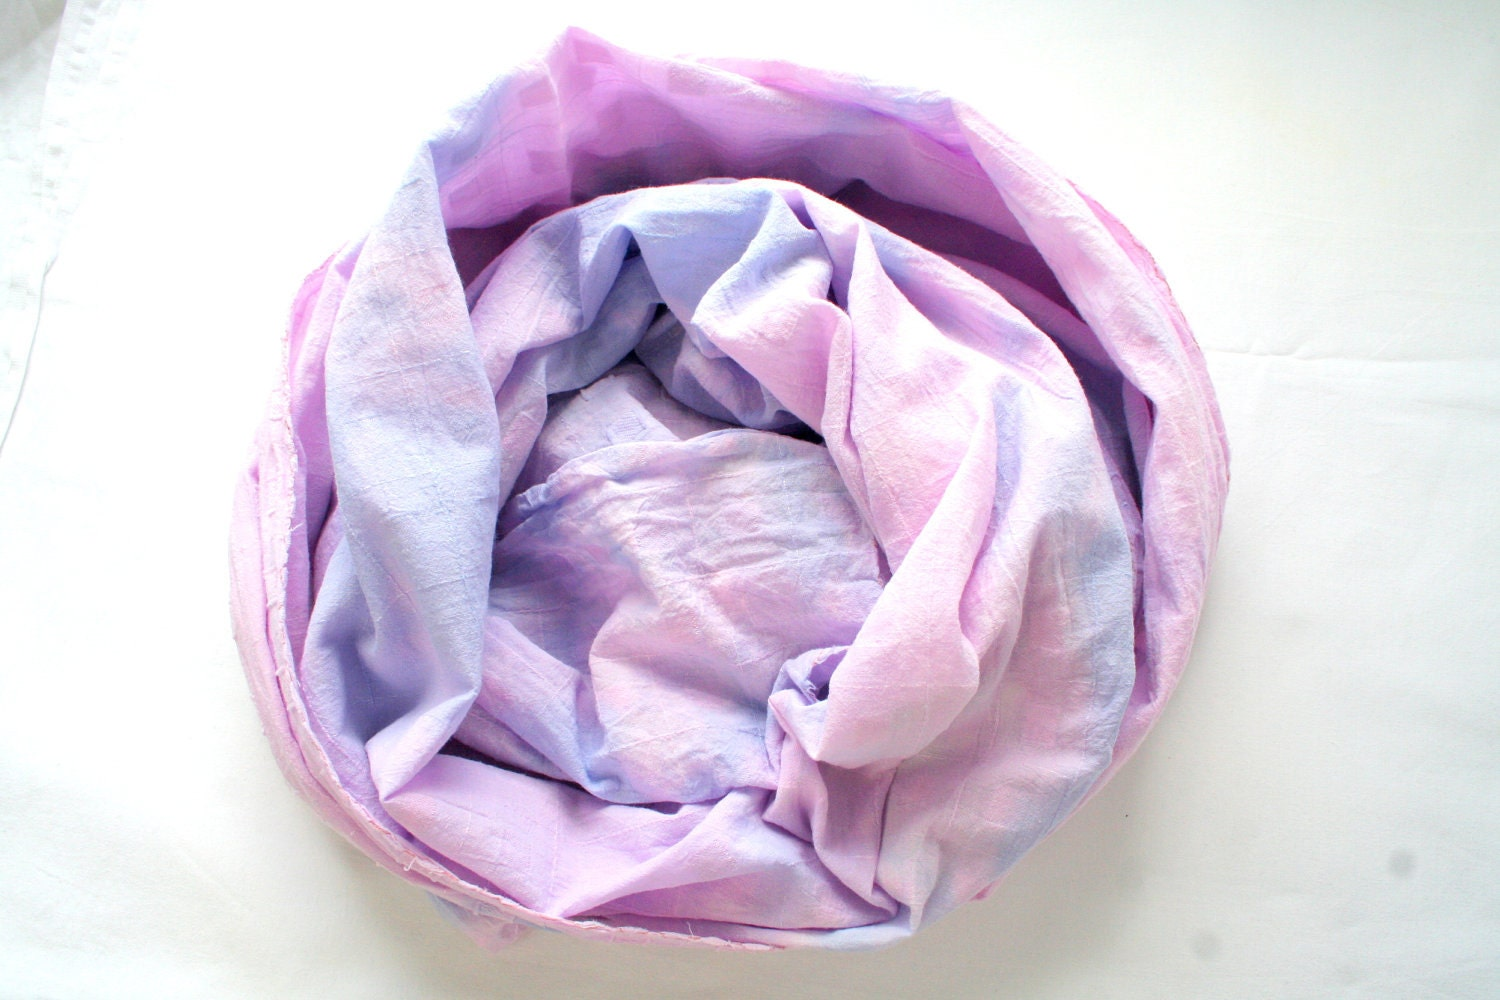 SALE 30% Hand dyed shawl in shades of white pink purple and blue - extra large summer cotton scarf or wrap - LilacCadillac